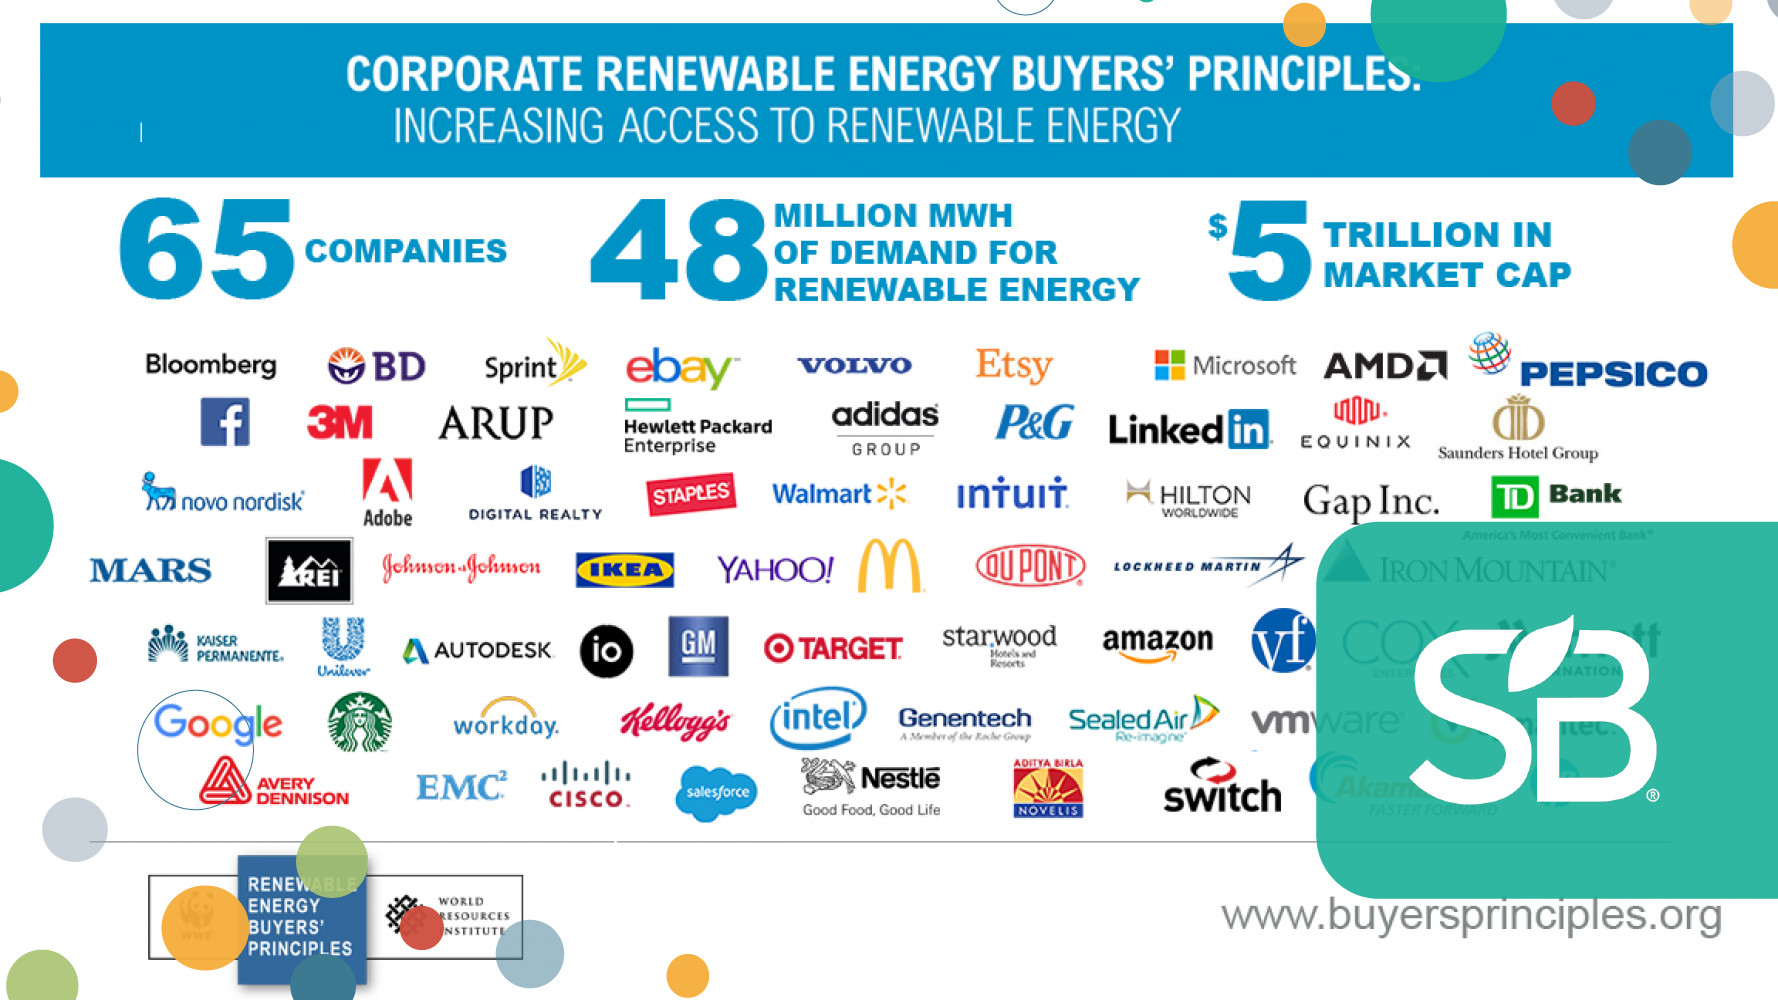 PepsiCo Signs On To Renewable Energy Buyers' Principles